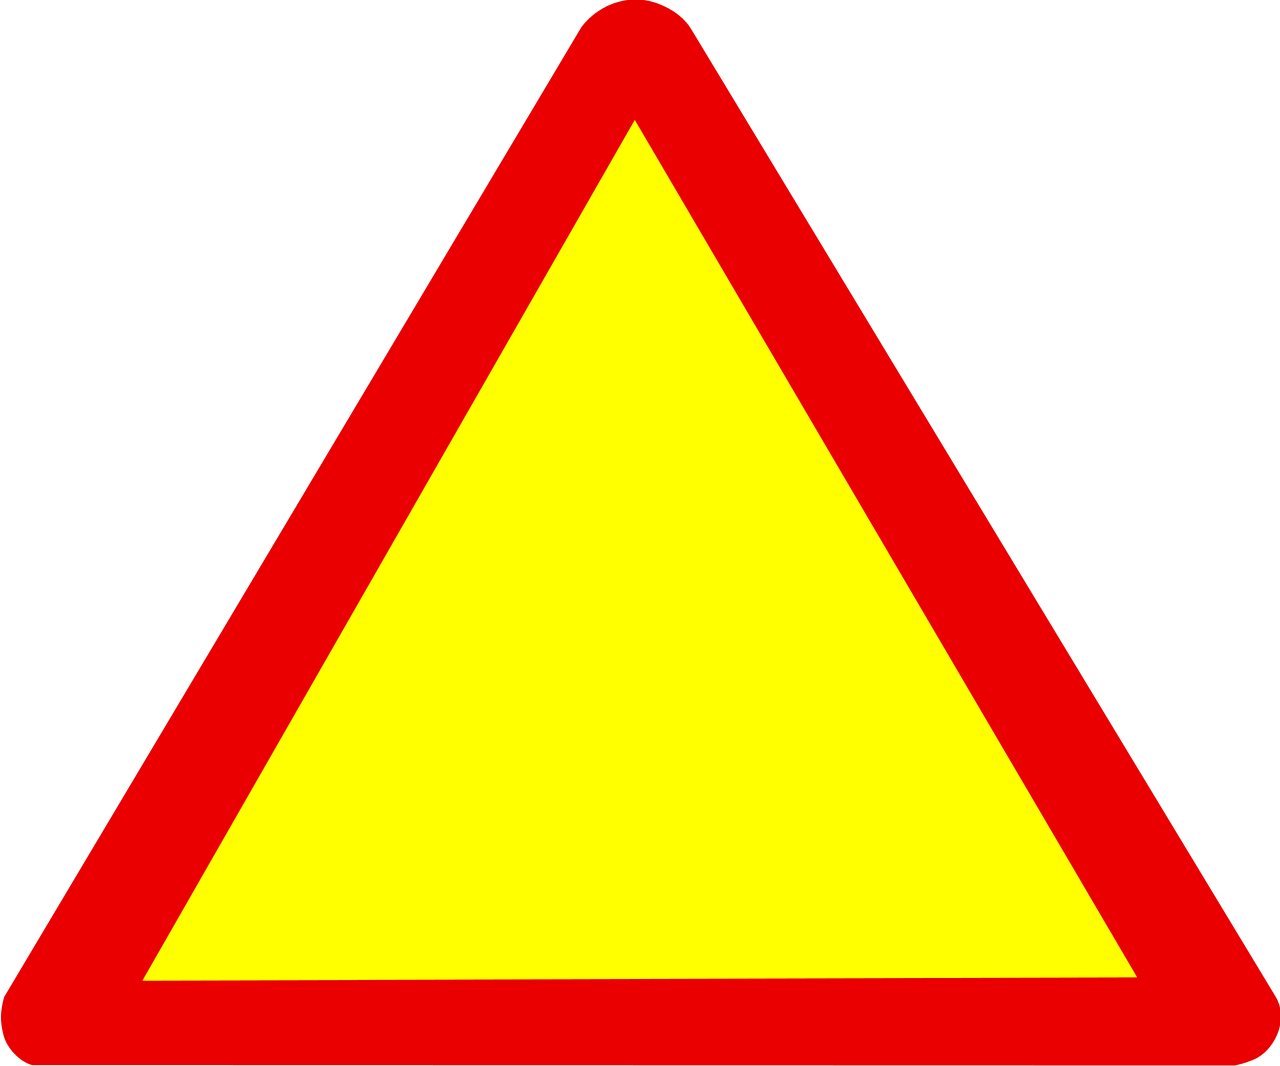 Caution sign warning sign clip art clipart.